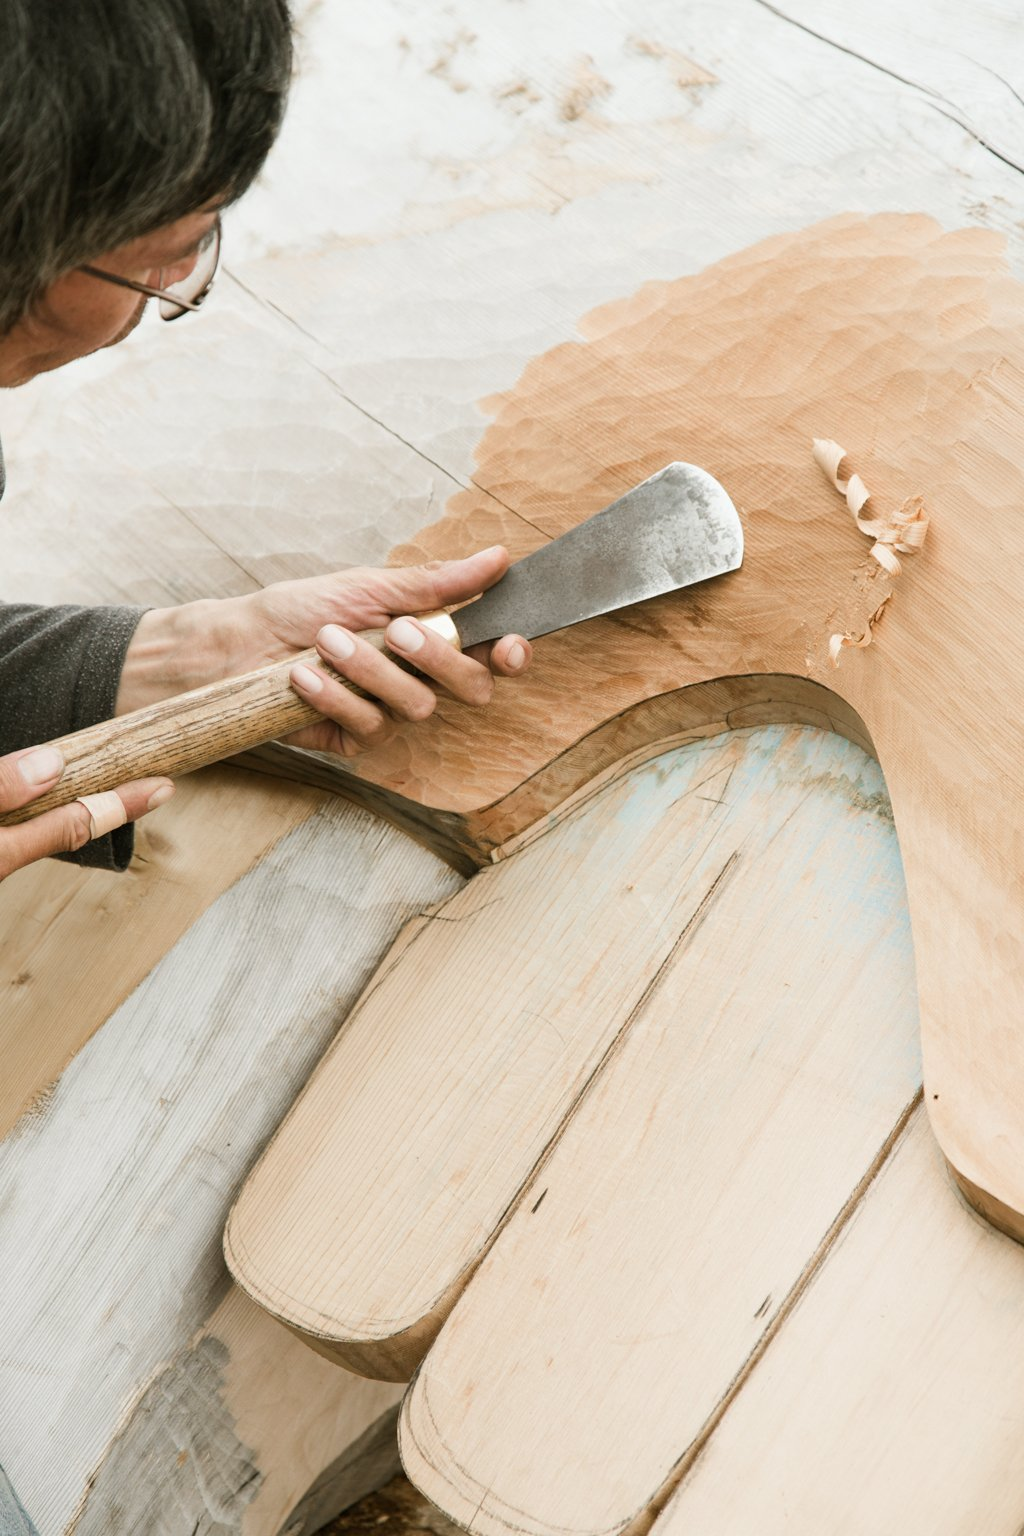 An artist carves a large piece of wood.